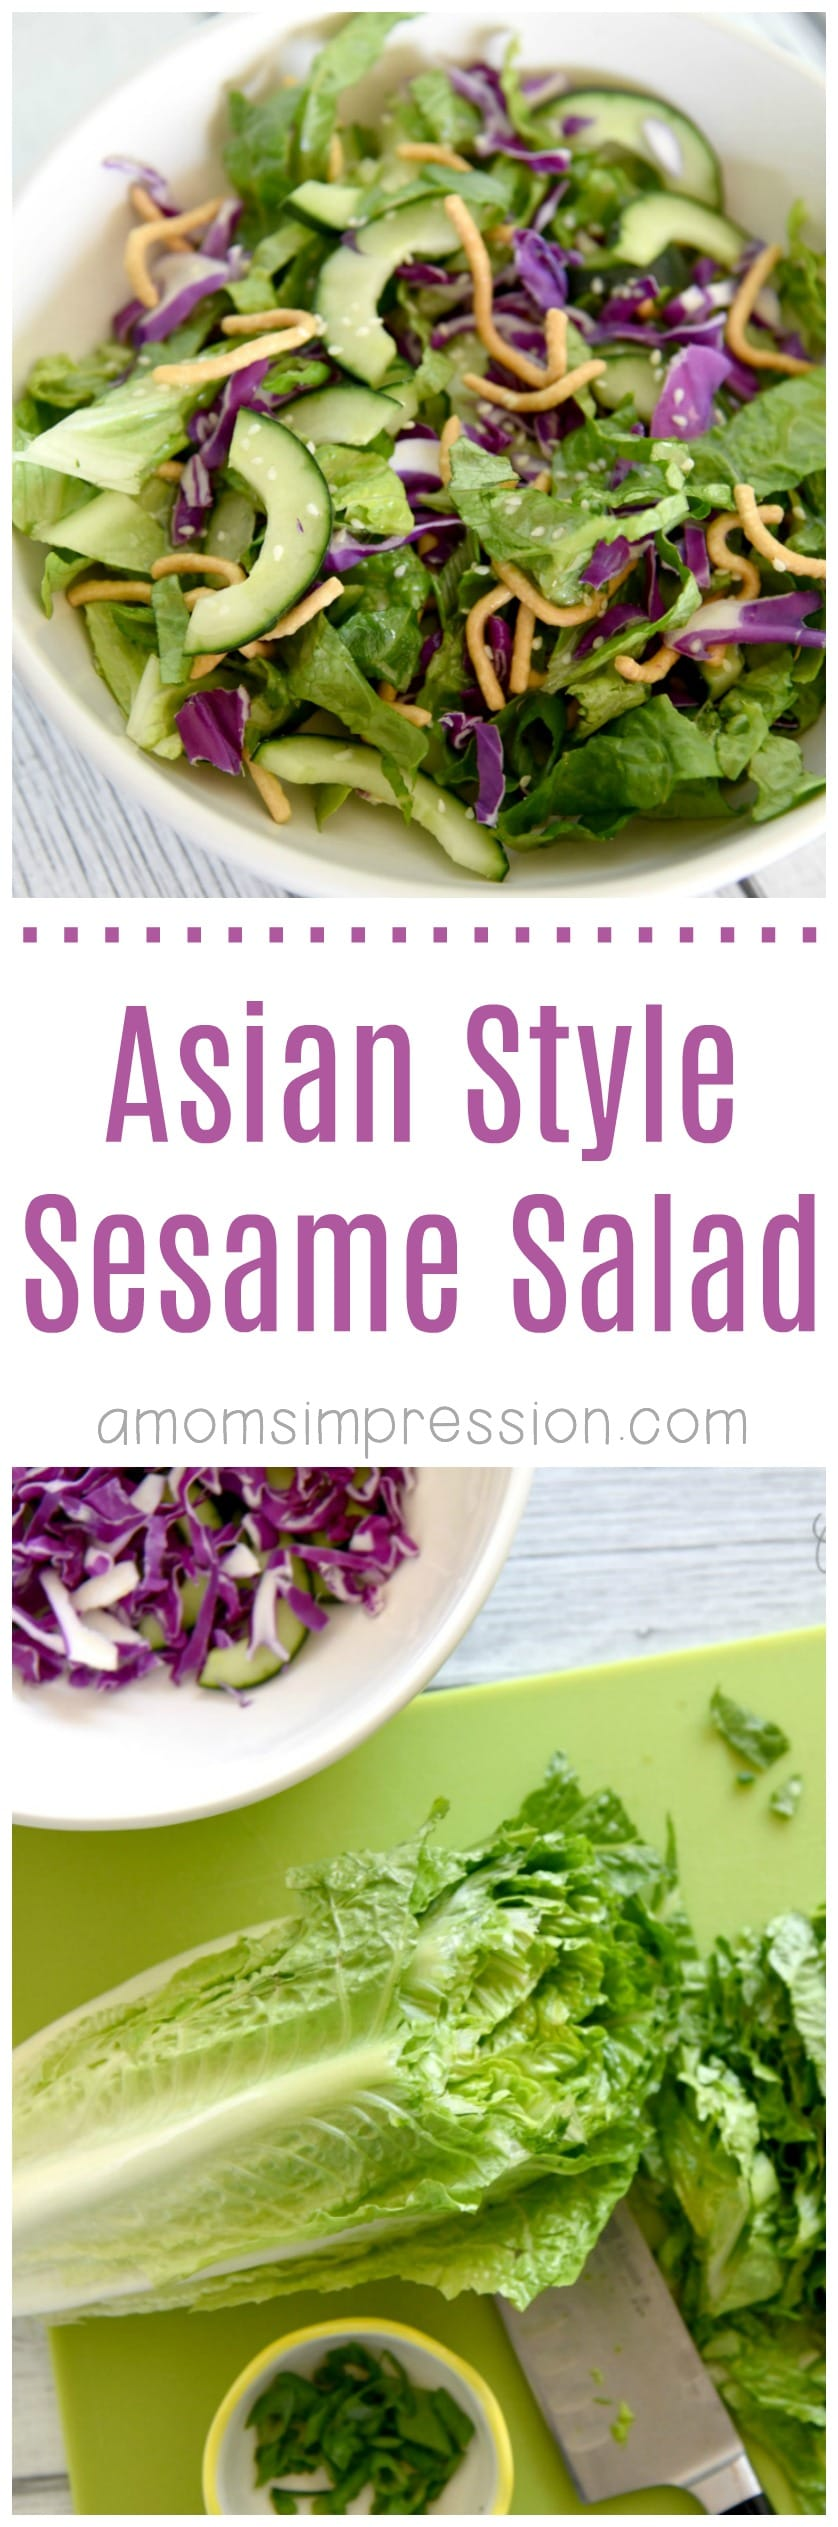 Asian Style Sesame Salad